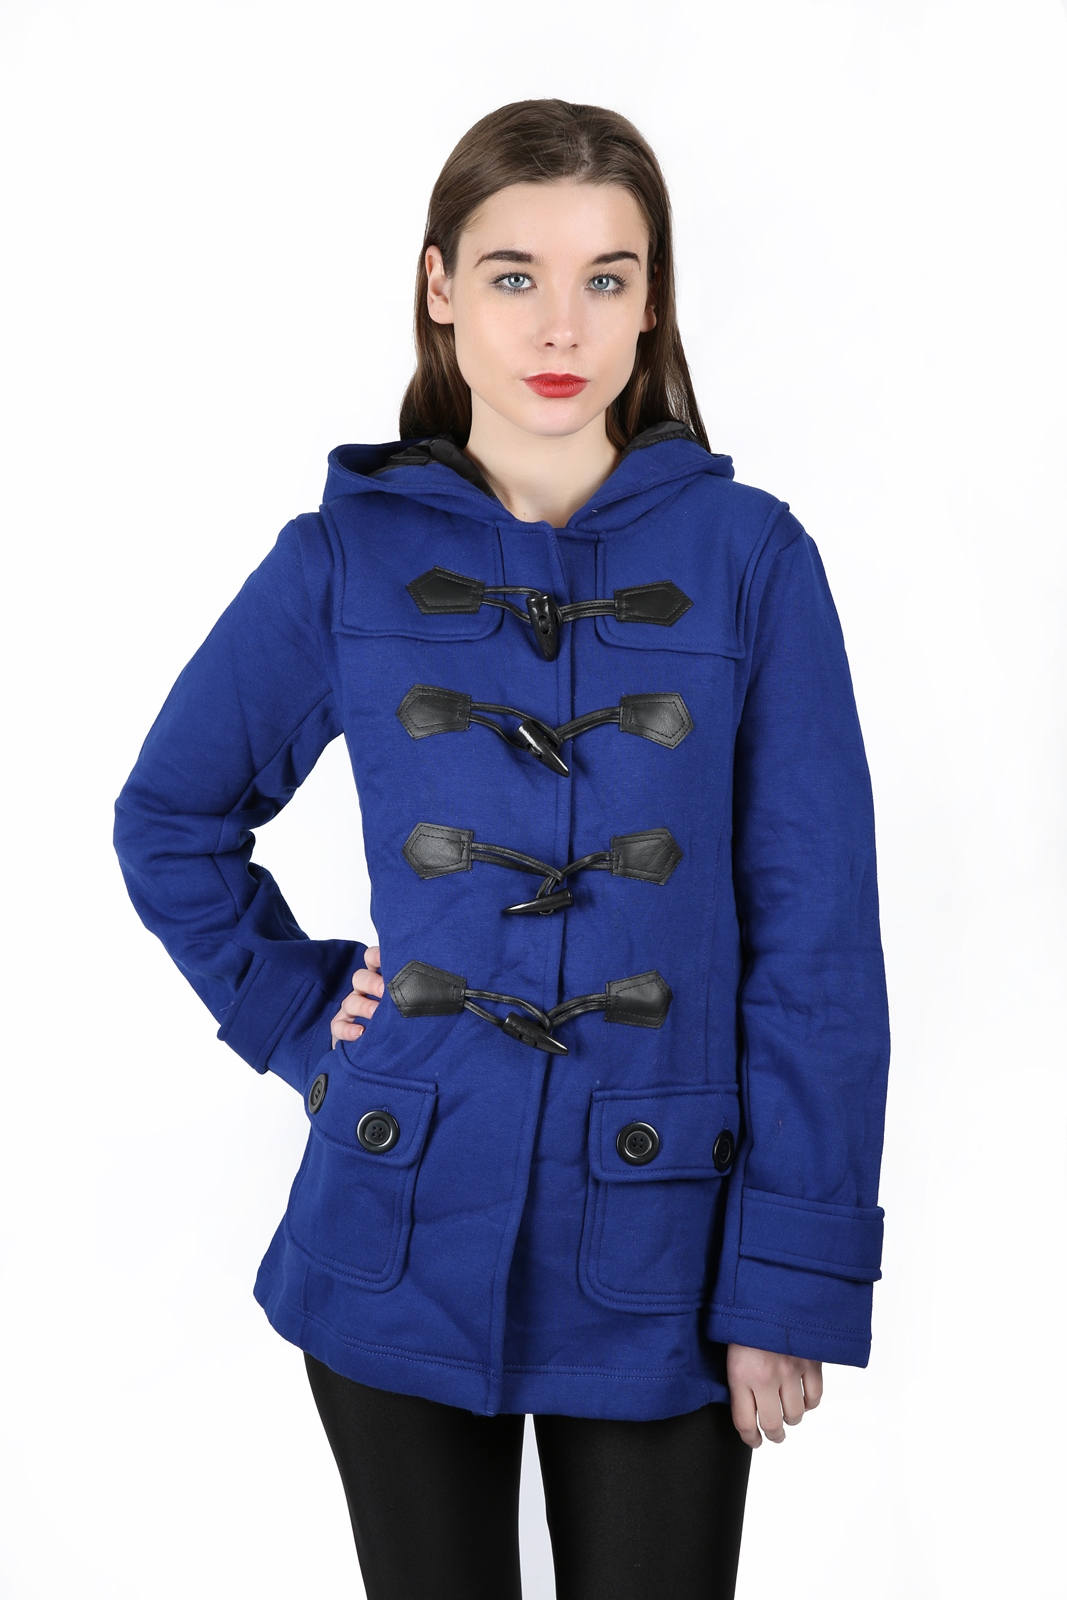 NEW LADIES HOODED DUFFLE COAT TRENCH POCKET WOMENS HOODED JACKET